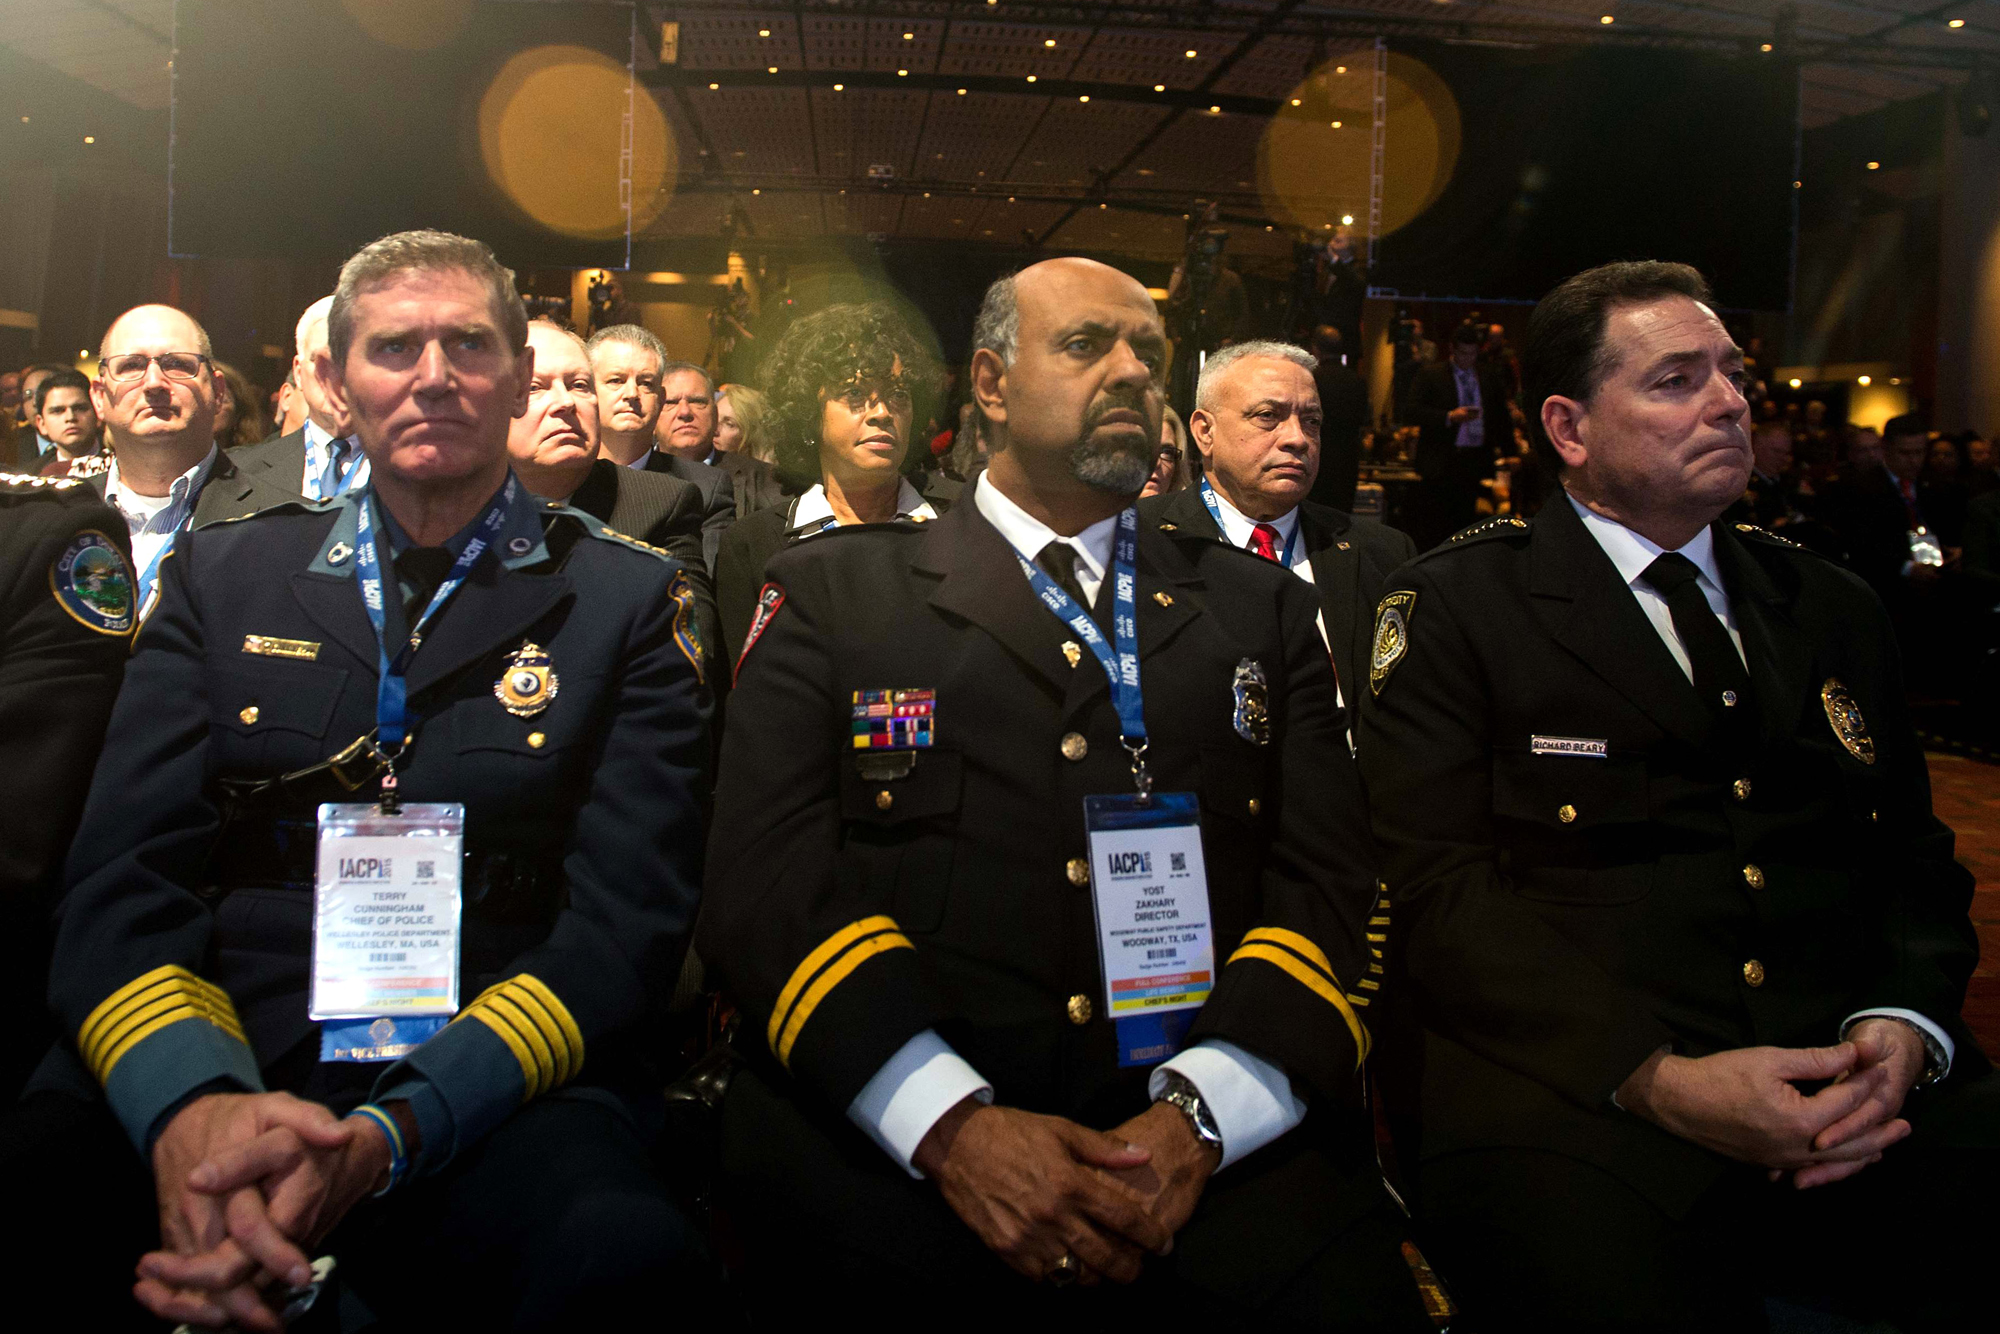 Law enforcement officers listen to US President Barack Obama speak at the International Association of Chiefs of Police Annual Conference and Exposition in Chicago on October 27, 2015.